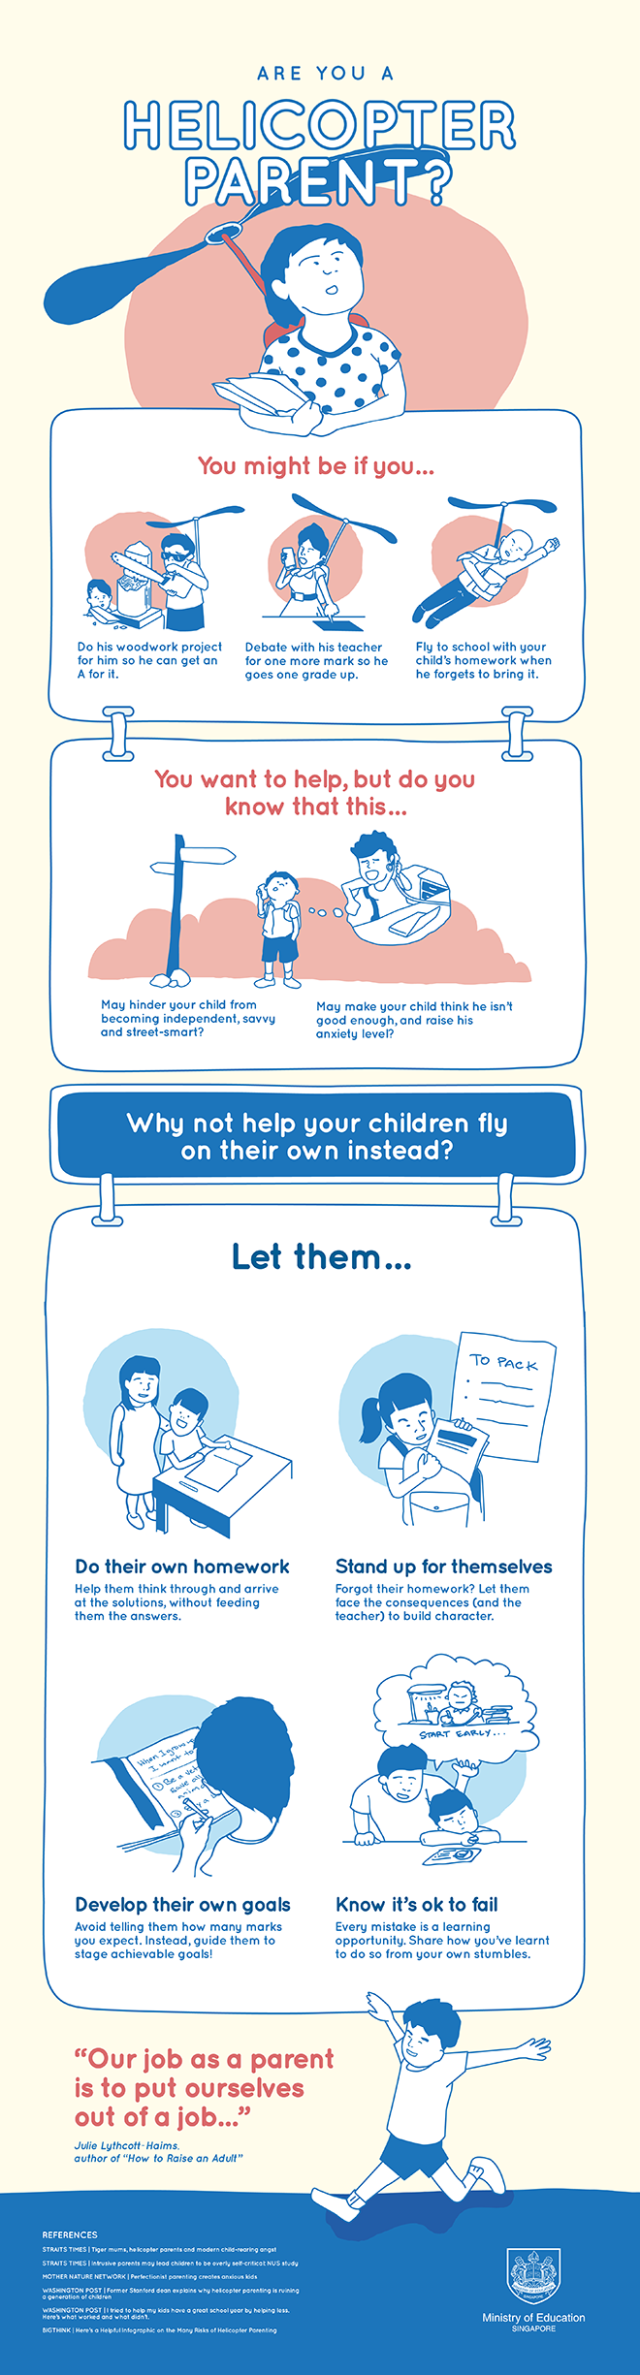 helicopter-parenting-(1)